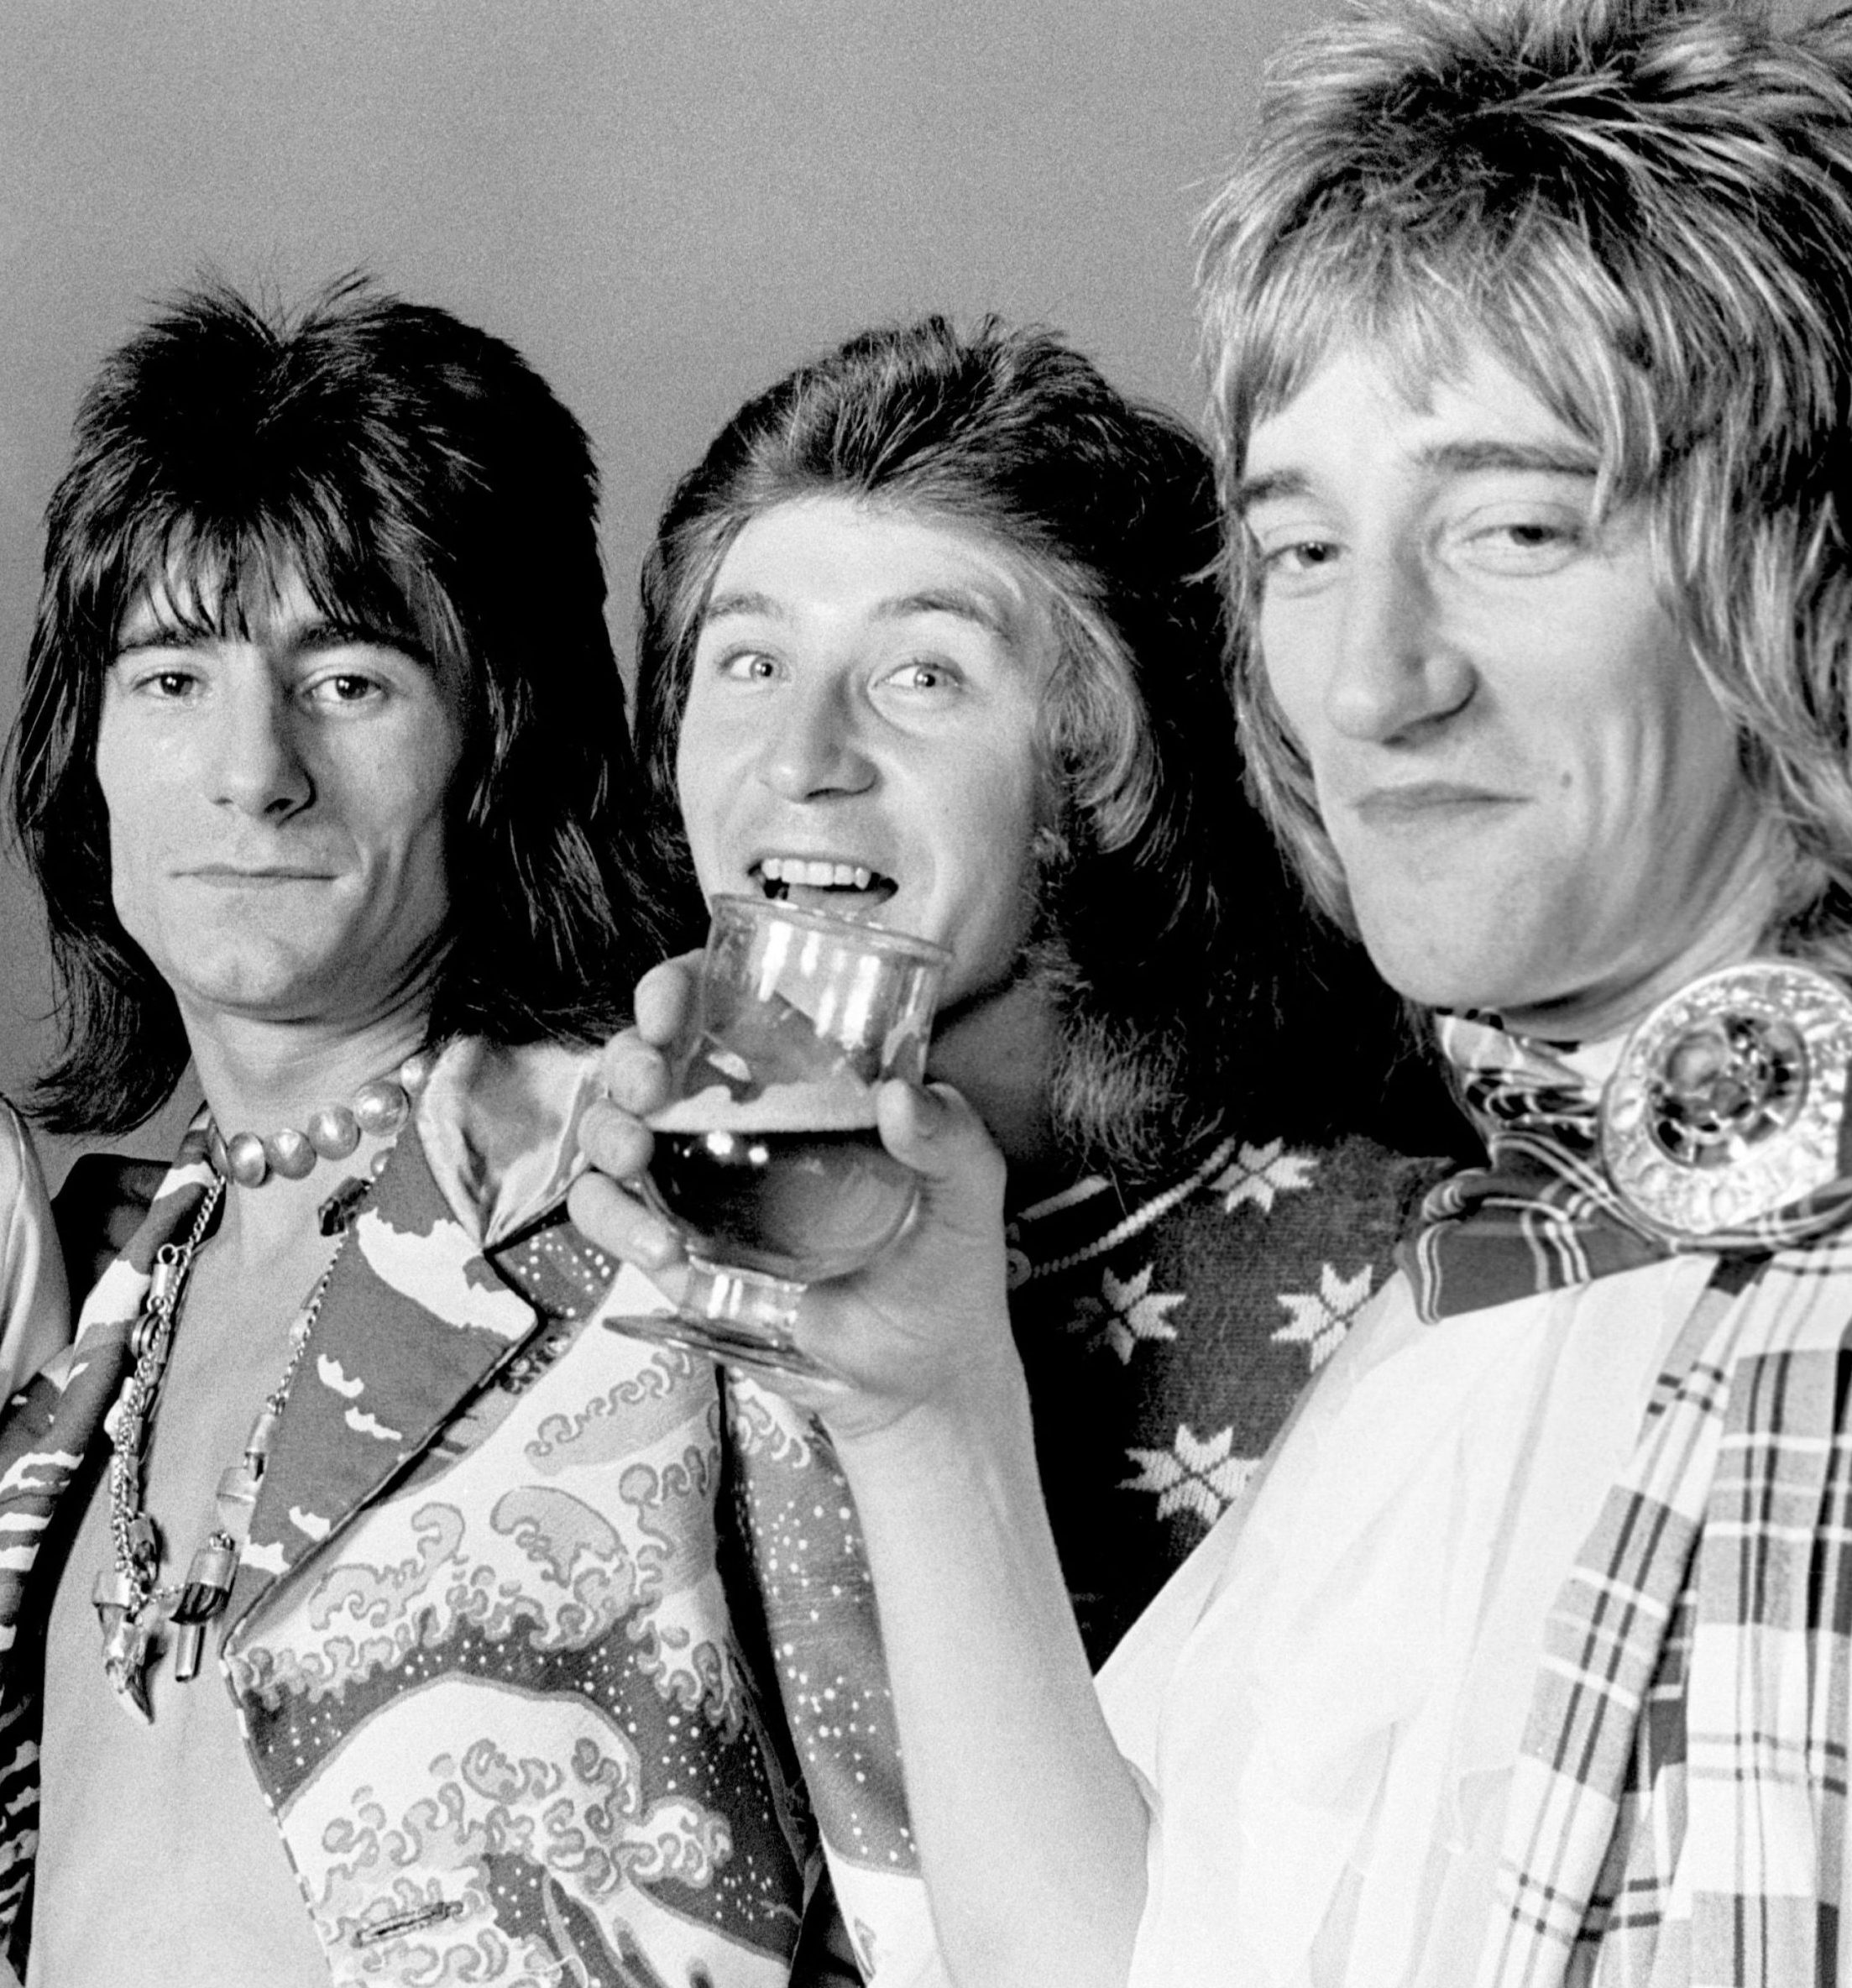 Isle of Wight festival: Rod Stewart set to reunite with The Faces to fulfill 'bucket list'